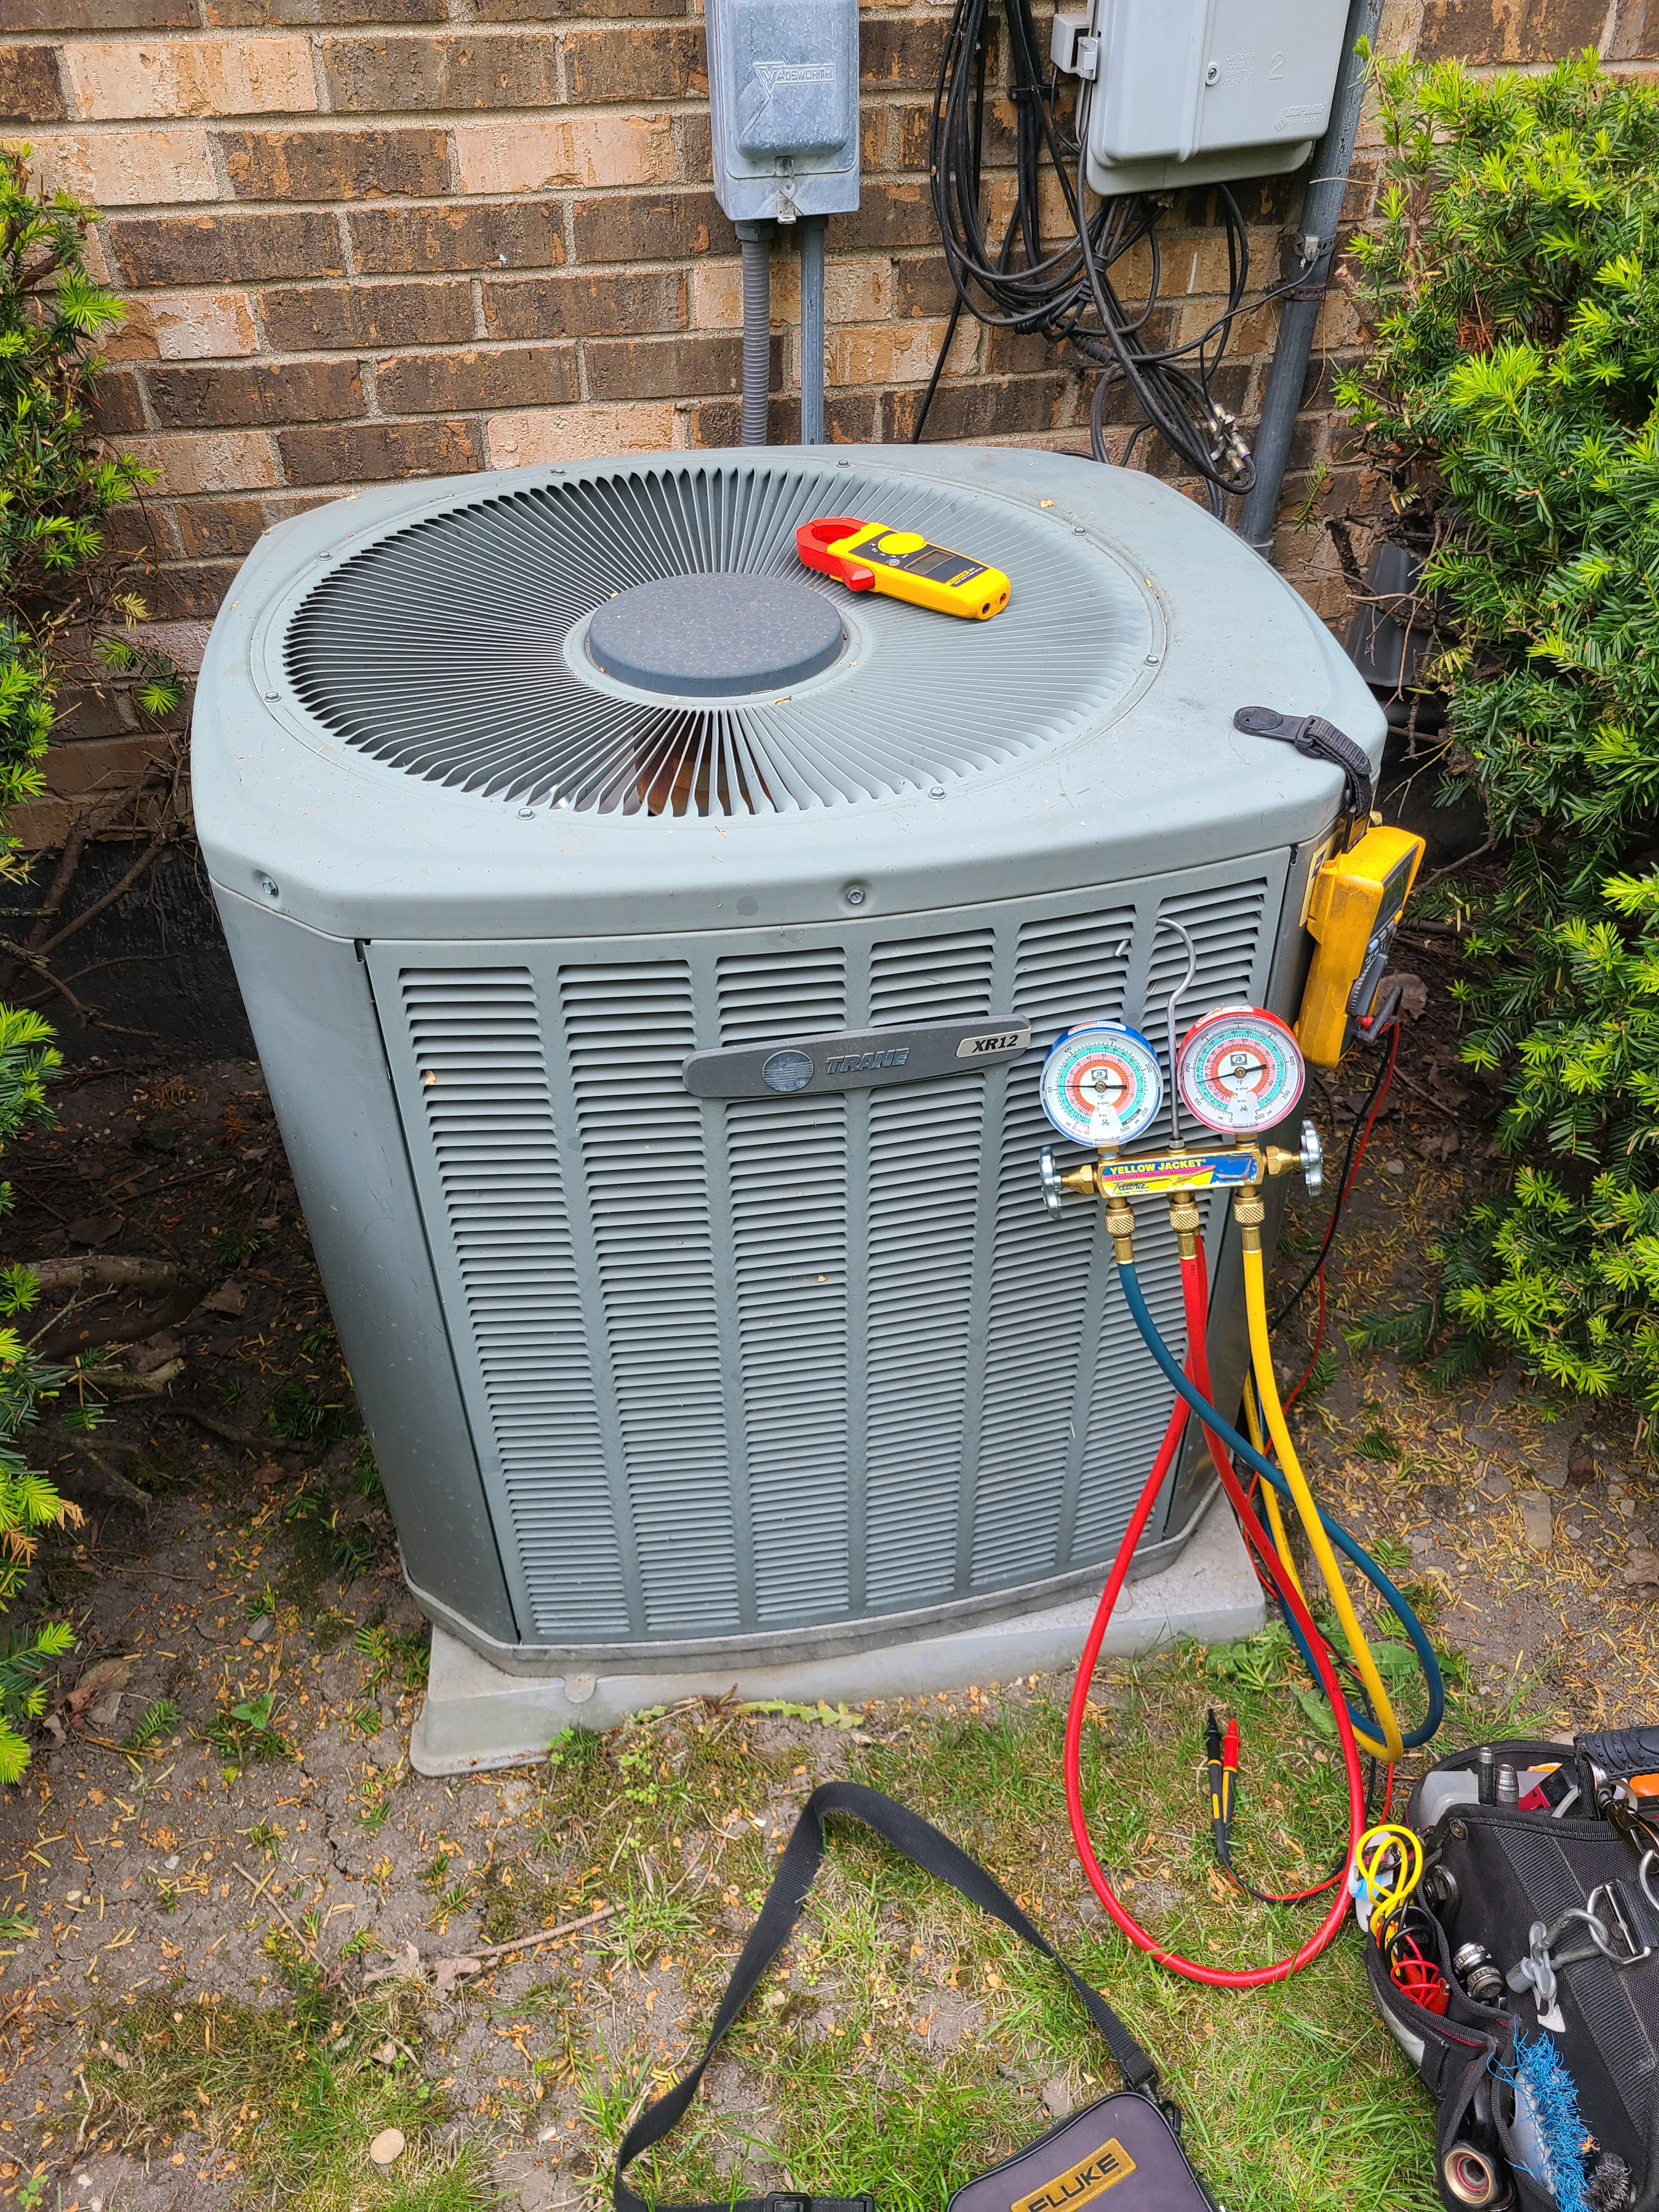 Trane spring ac tune up. System cleaned and checked and ready for summer.